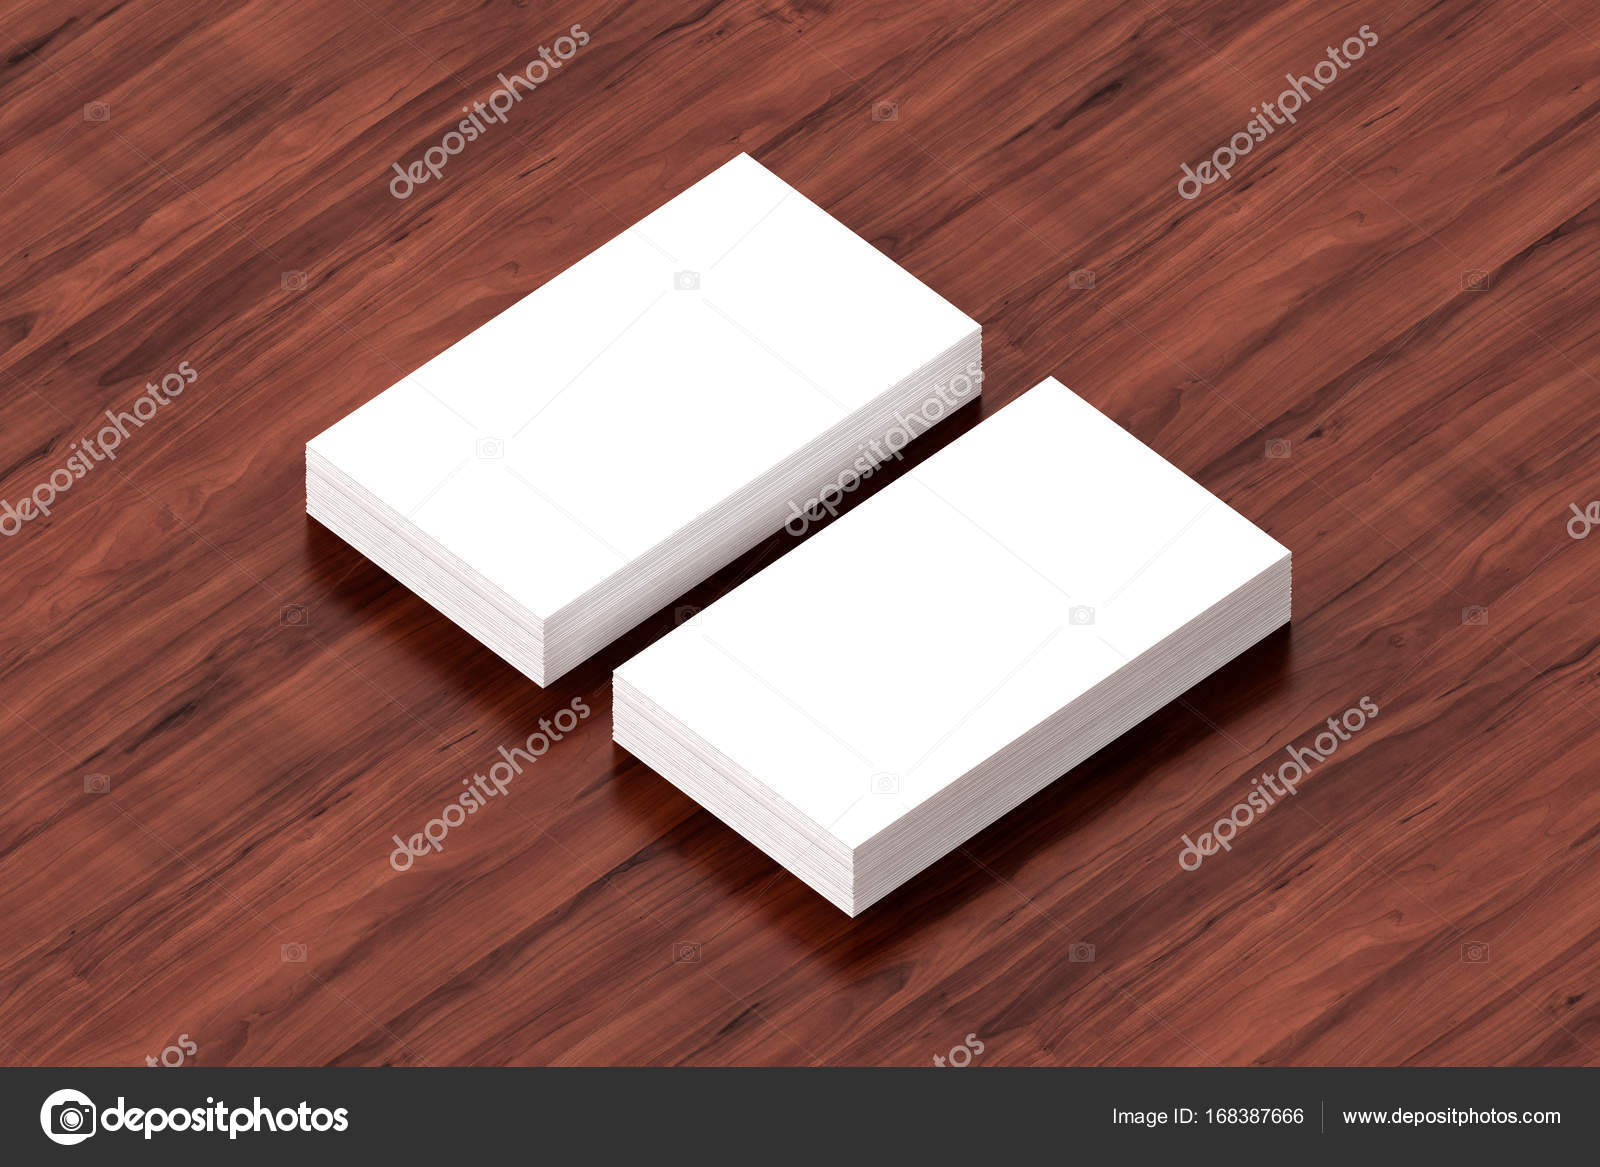 Business cards blank mockup template 3d illustration stock business cards blank mockup template 3d illustration photo by daliborzivotic accmission Image collections